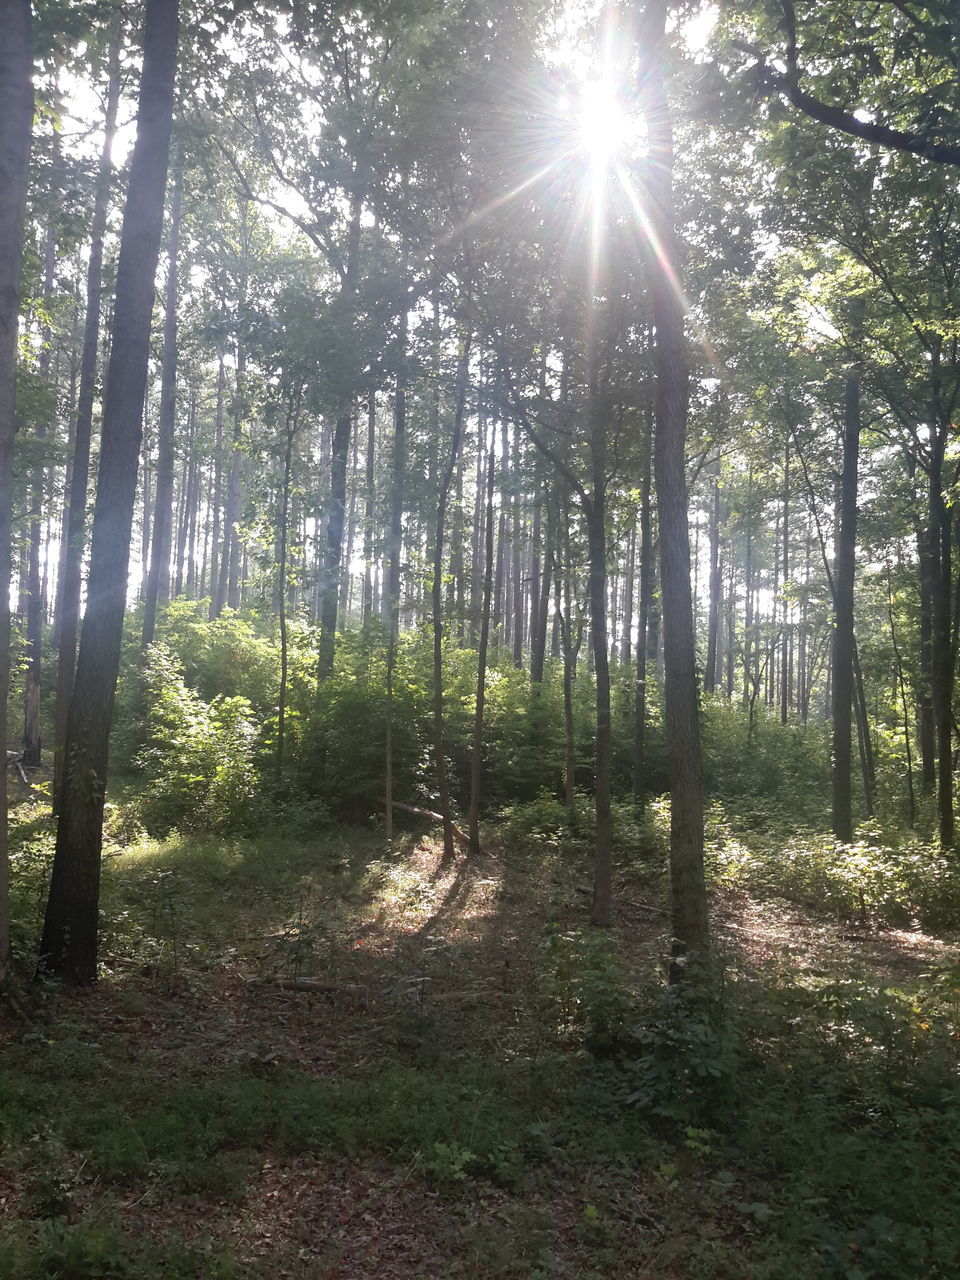 forest, sunbeam, nature, tree, tranquility, sunlight, sun, no people, beauty in nature, lens flare, tranquil scene, scenics, growth, outdoors, day, landscape, tree trunk